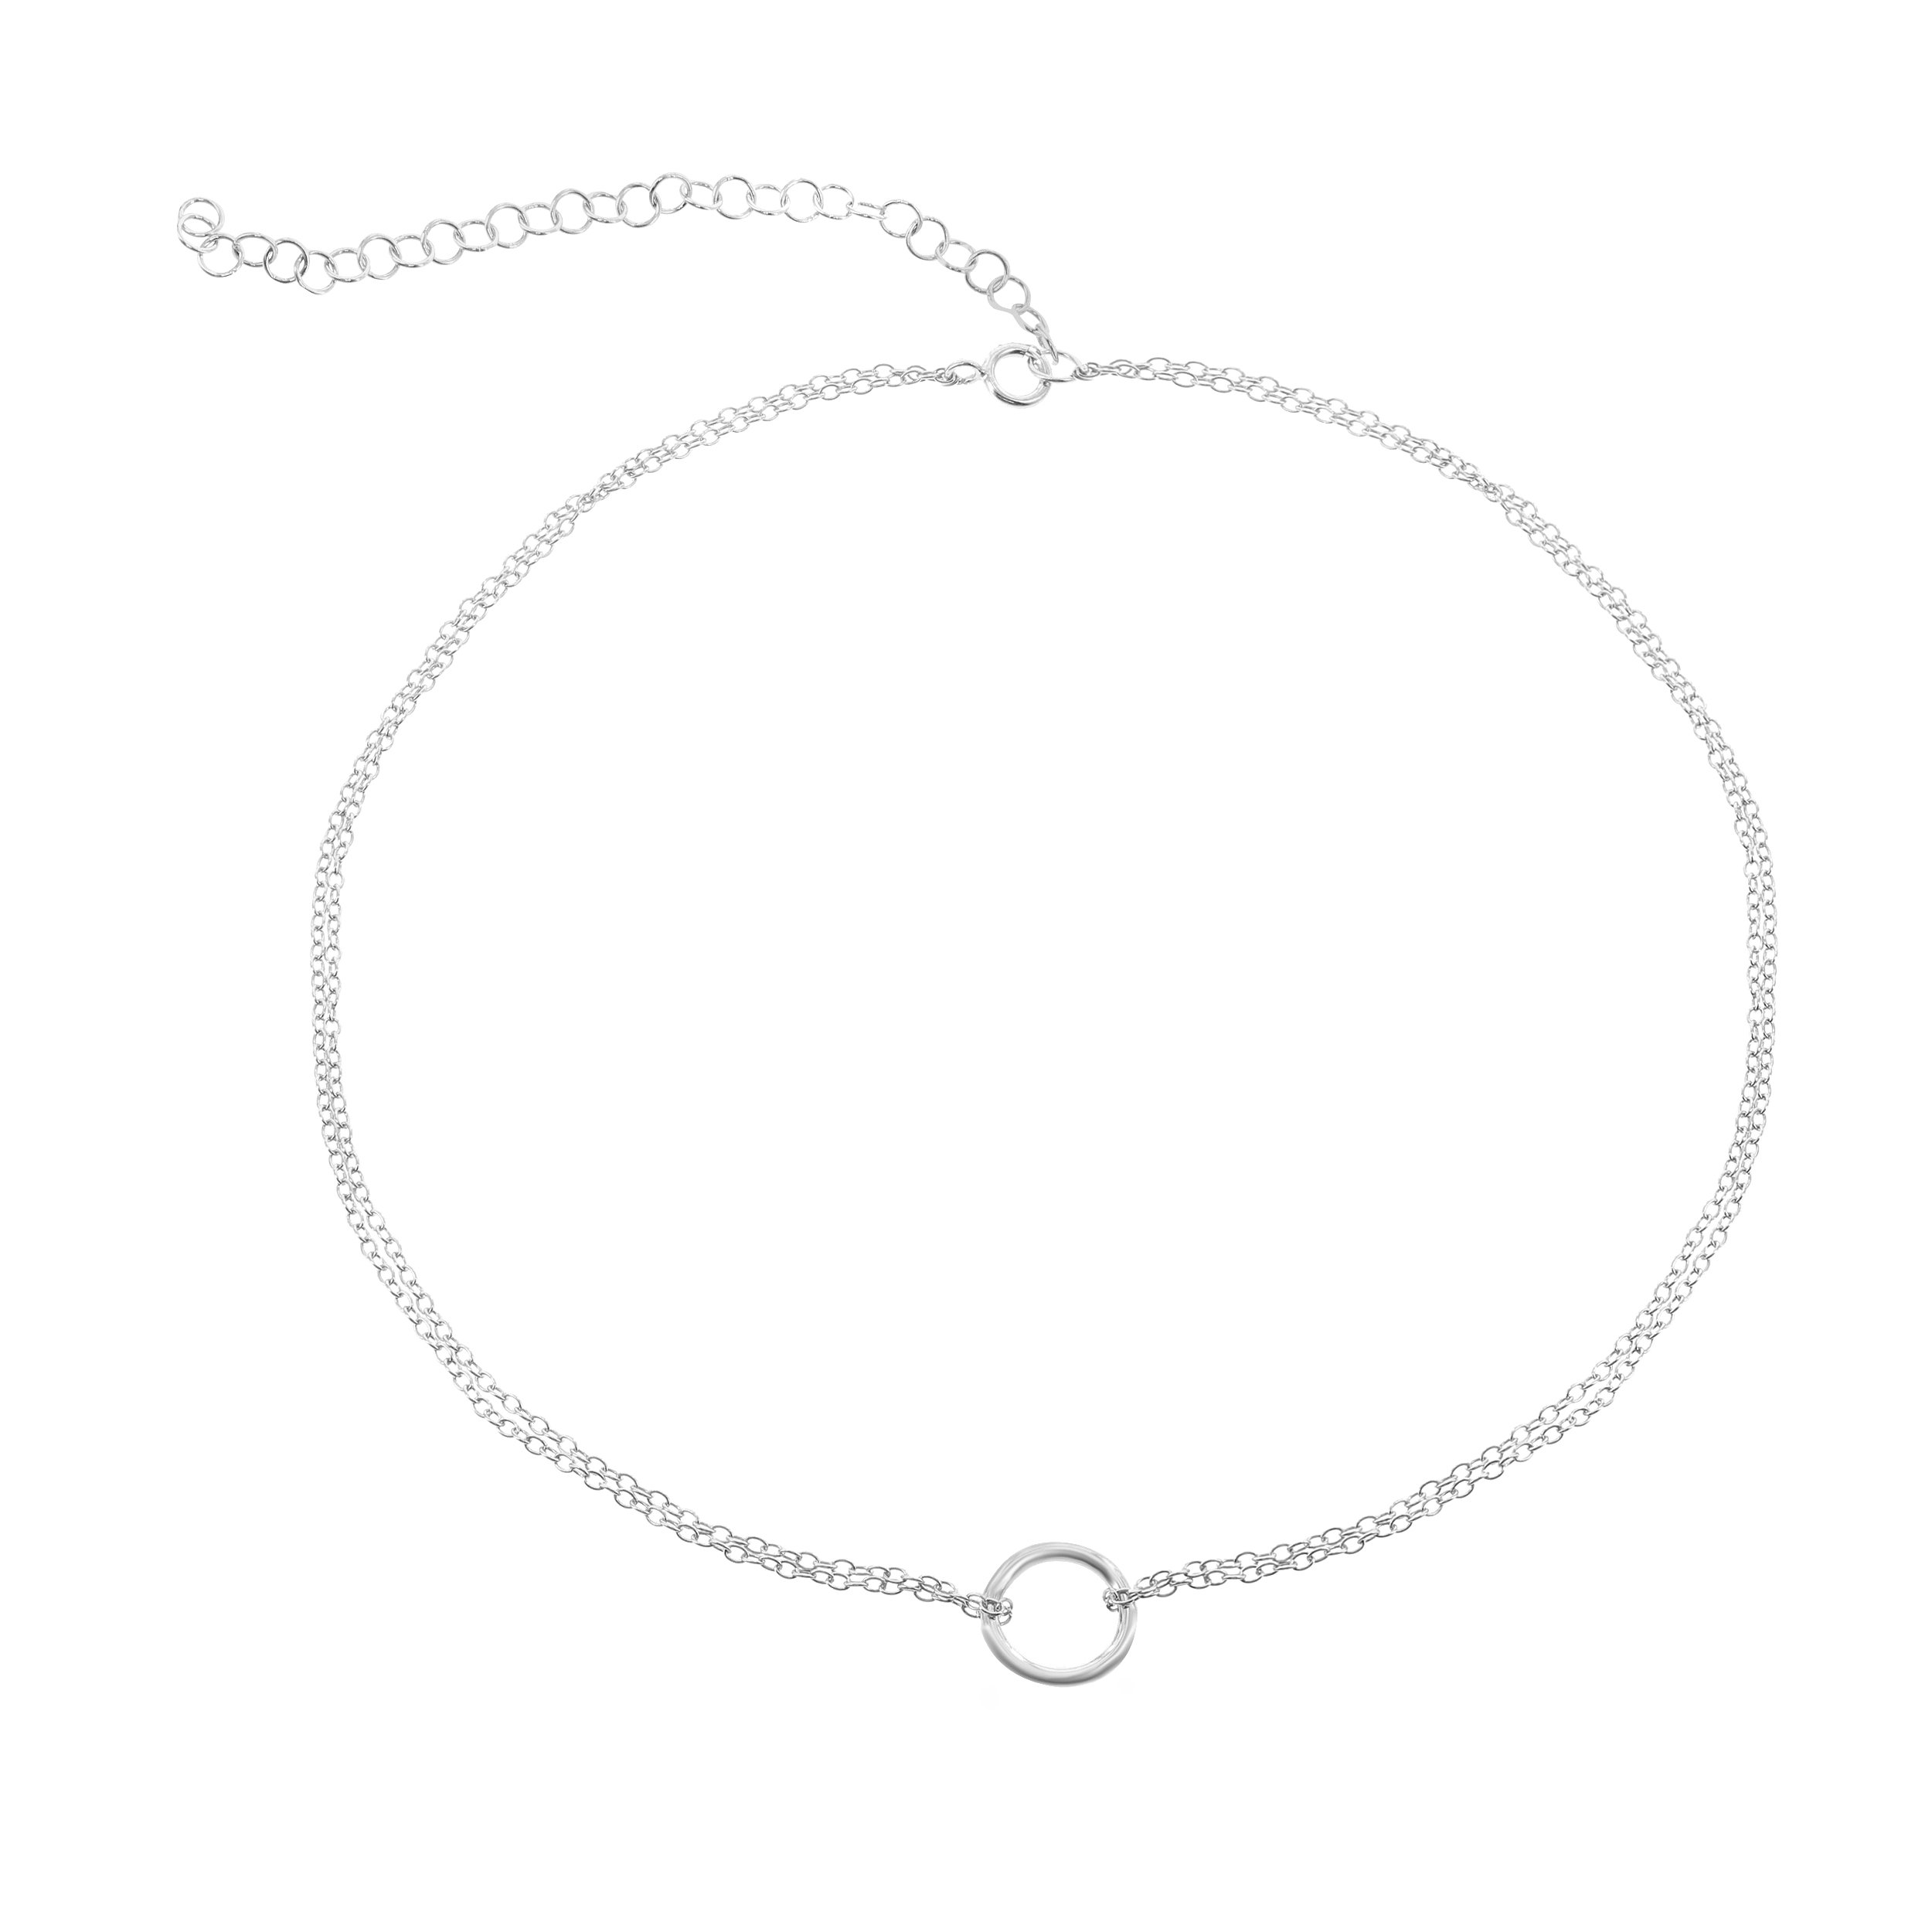 Beaux Bijoux 925 Sterling Silver Italian Adjustable 12''-15'' Center Circle Of Life Dainty Choker Necklace